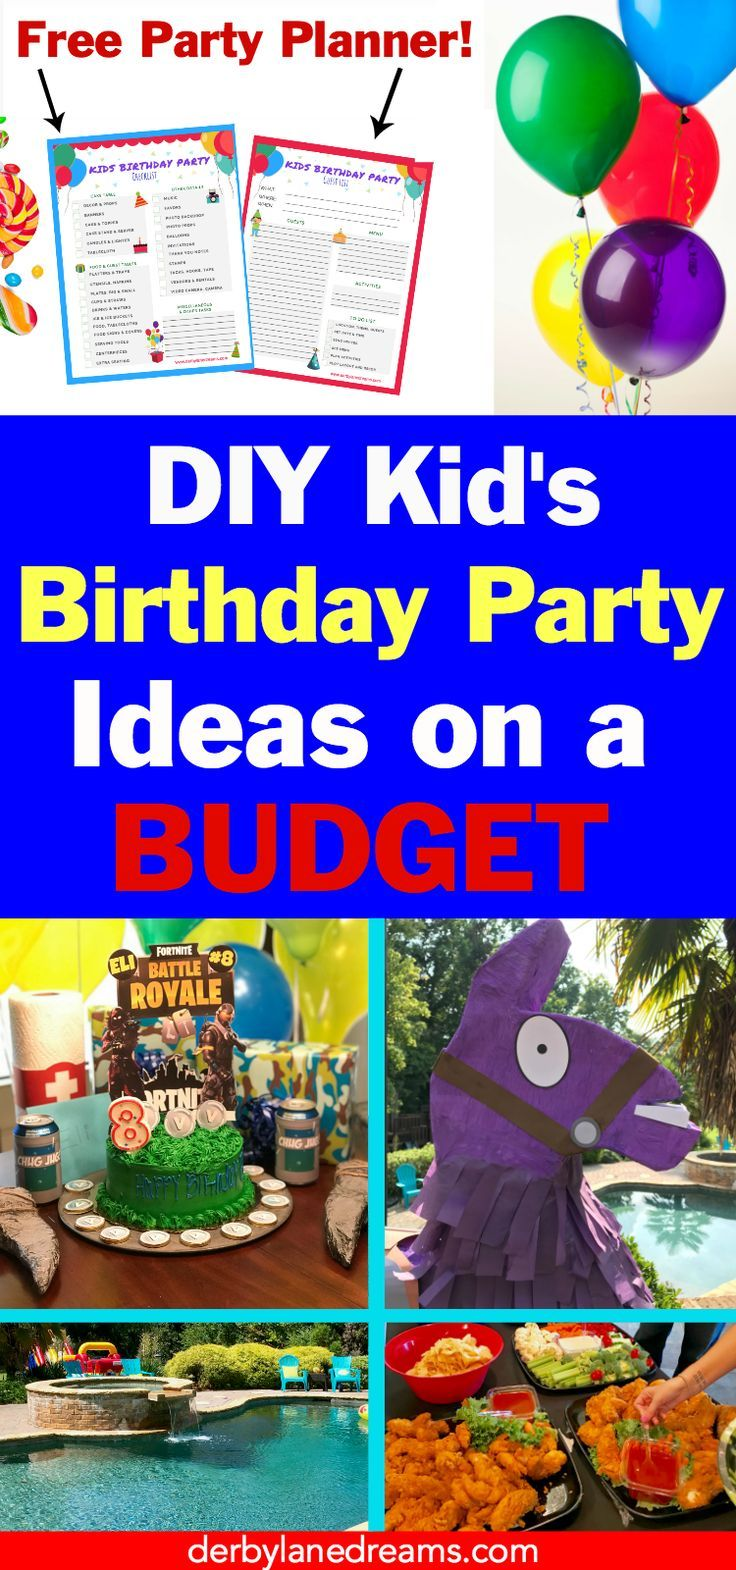 Fortnite Party Ideas, Fortnite Party Favors, and Supplies